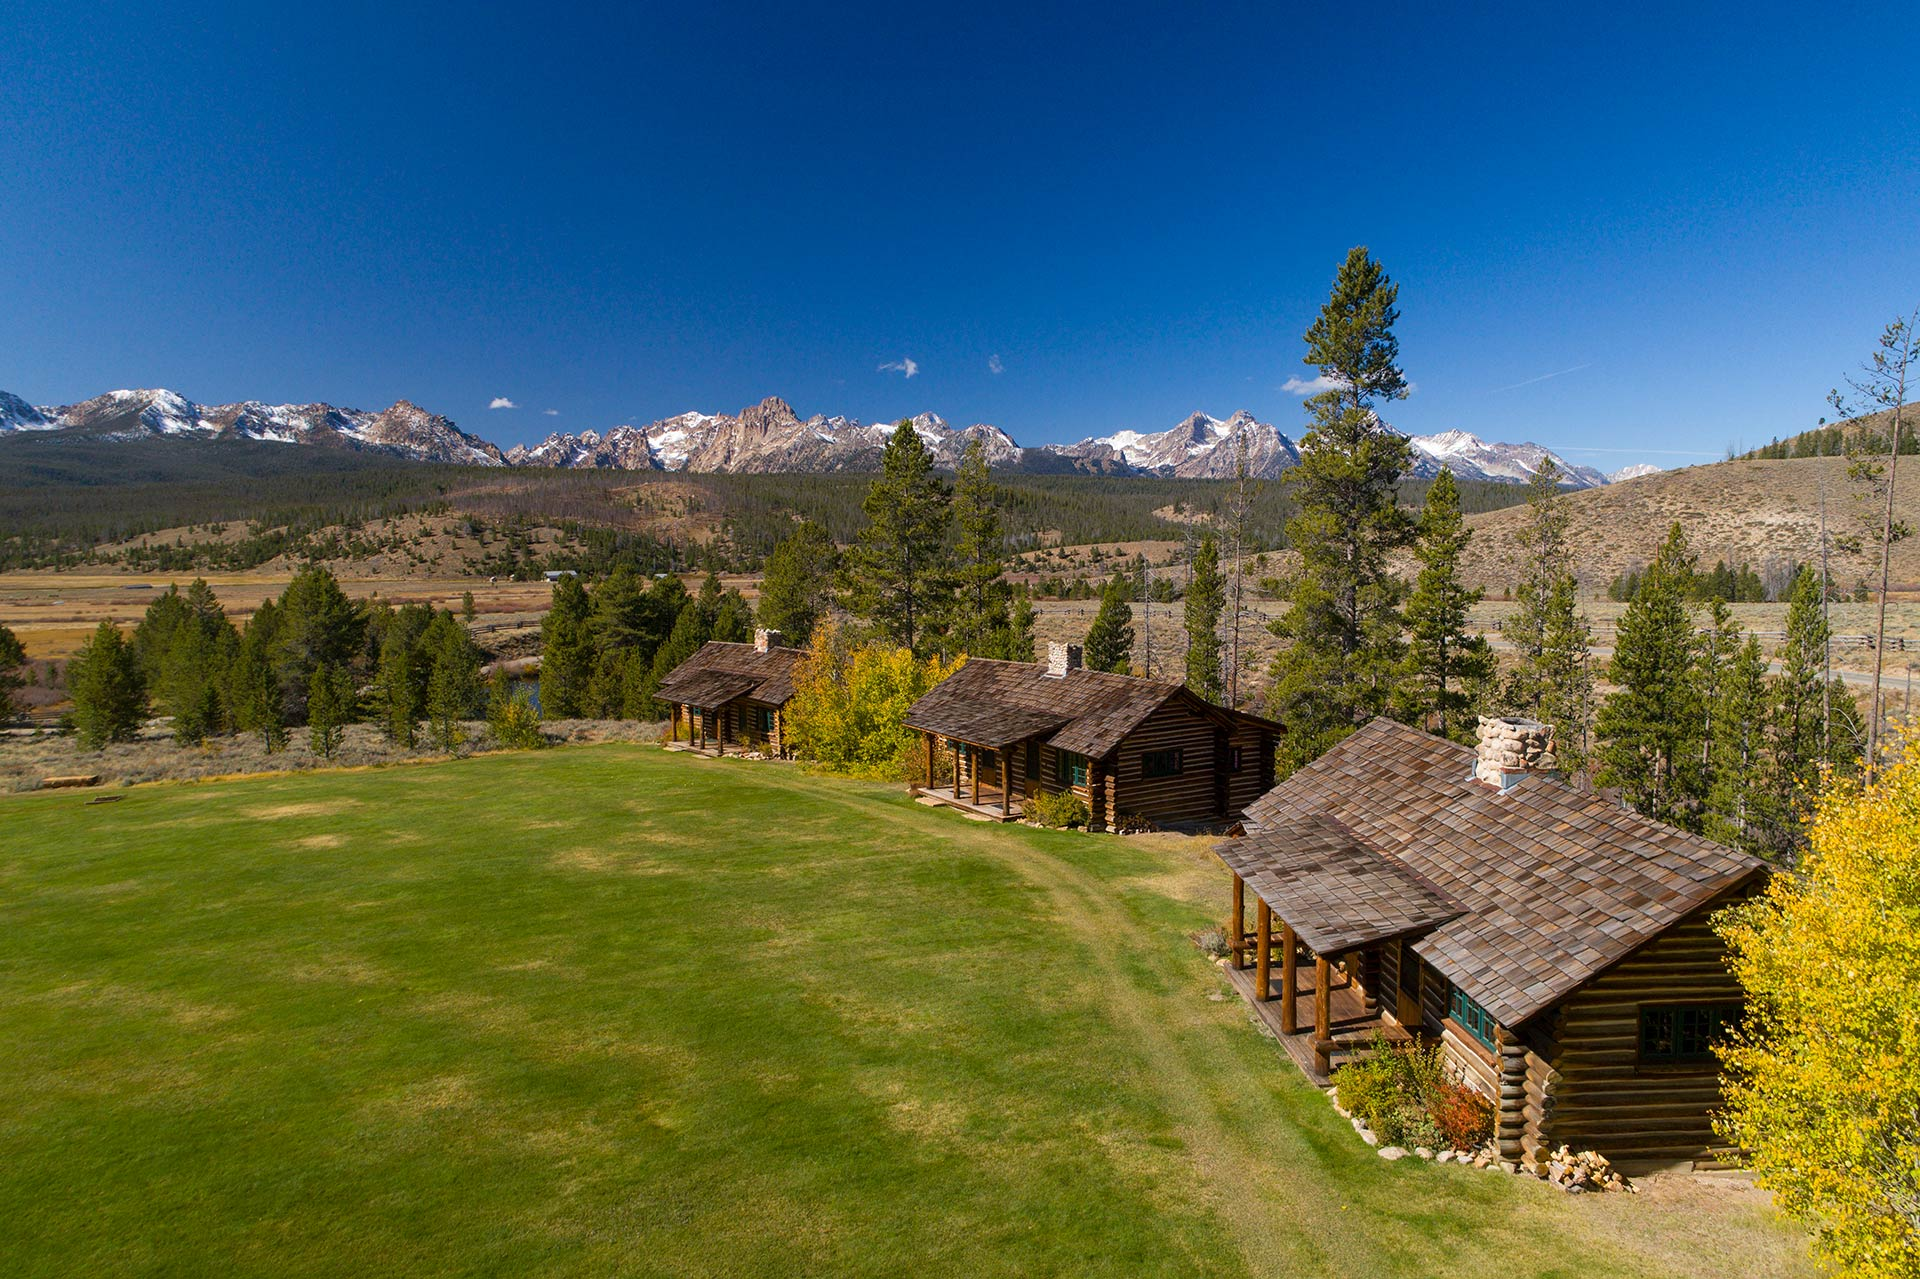 Idaho Rocky Mountain Ranch offers luxury cabins in stanley idaho set in the sawtooth mountains